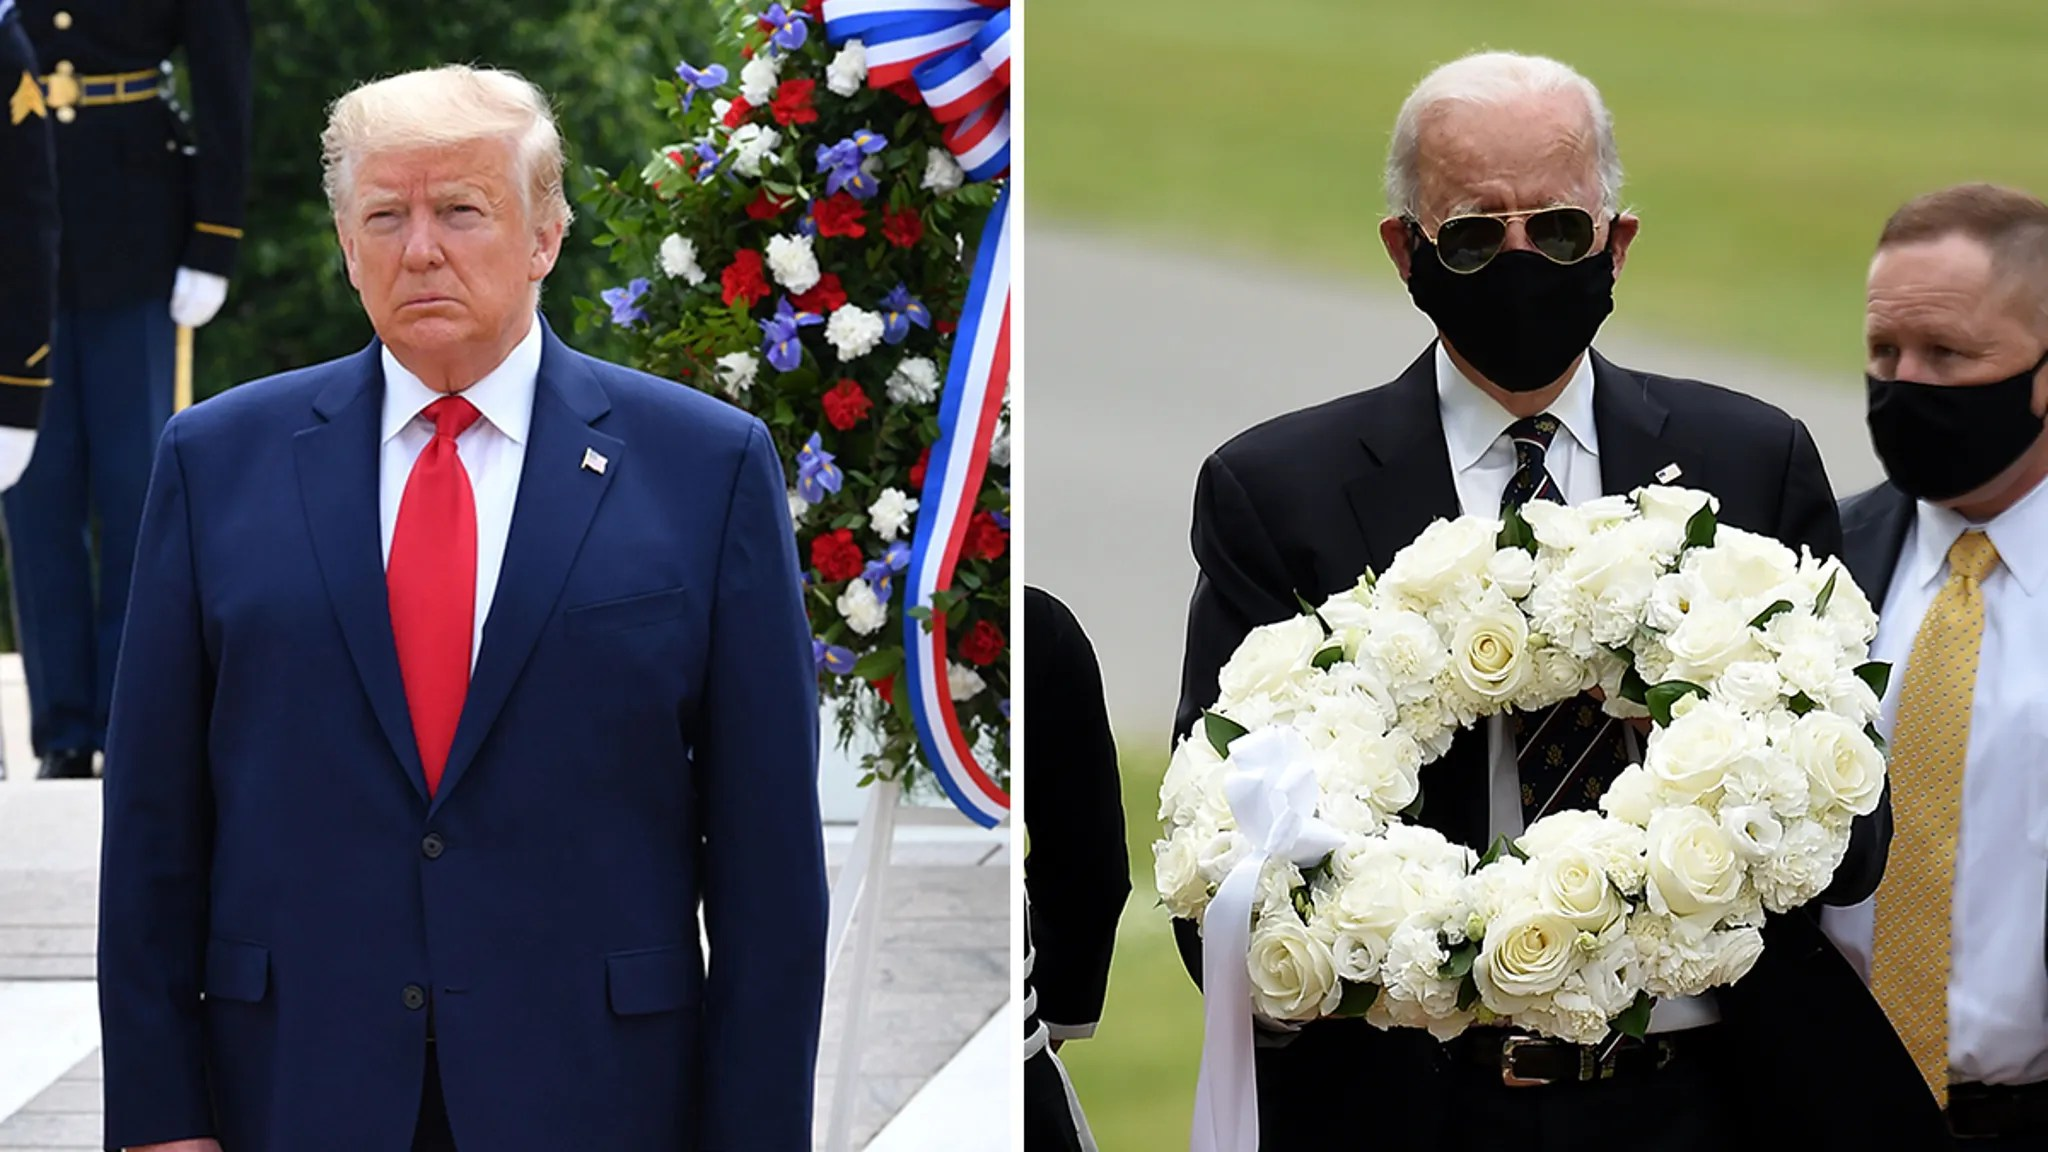 President Trump Doesn't Wear Mask for Memorial Day But Biden Does